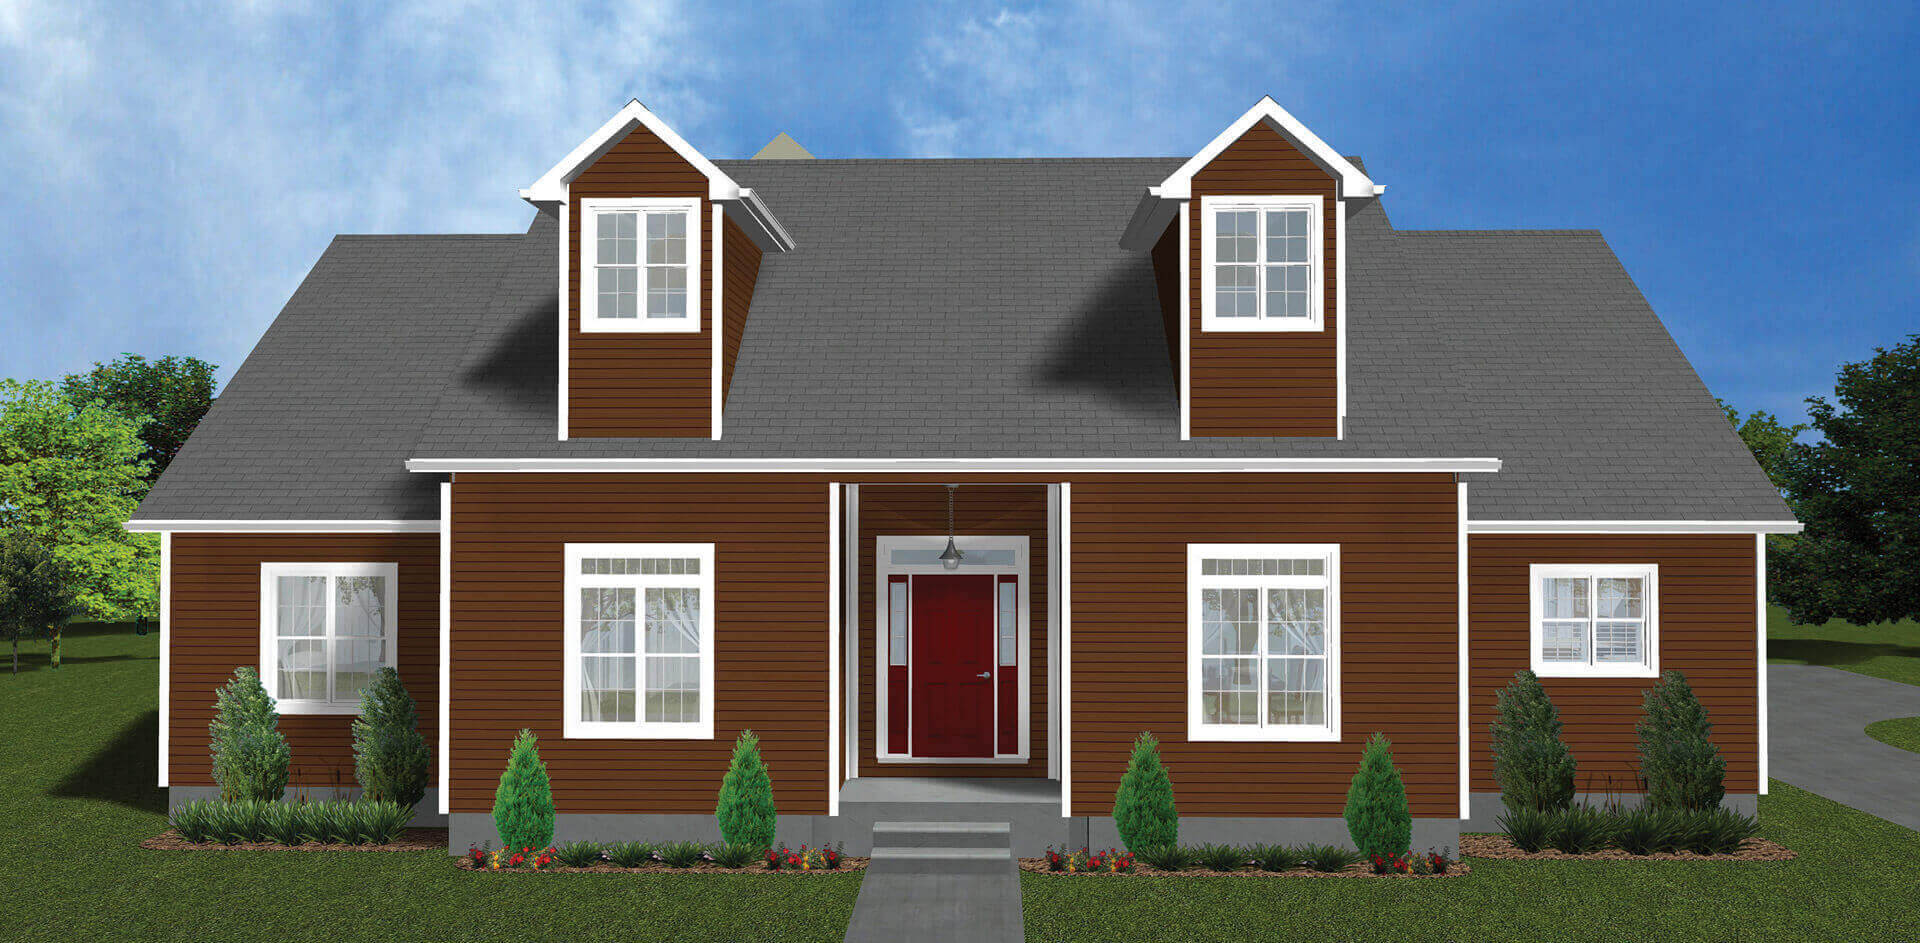 2740 sq.ft. timber mart house 3 bed 2.5 bath exterior render